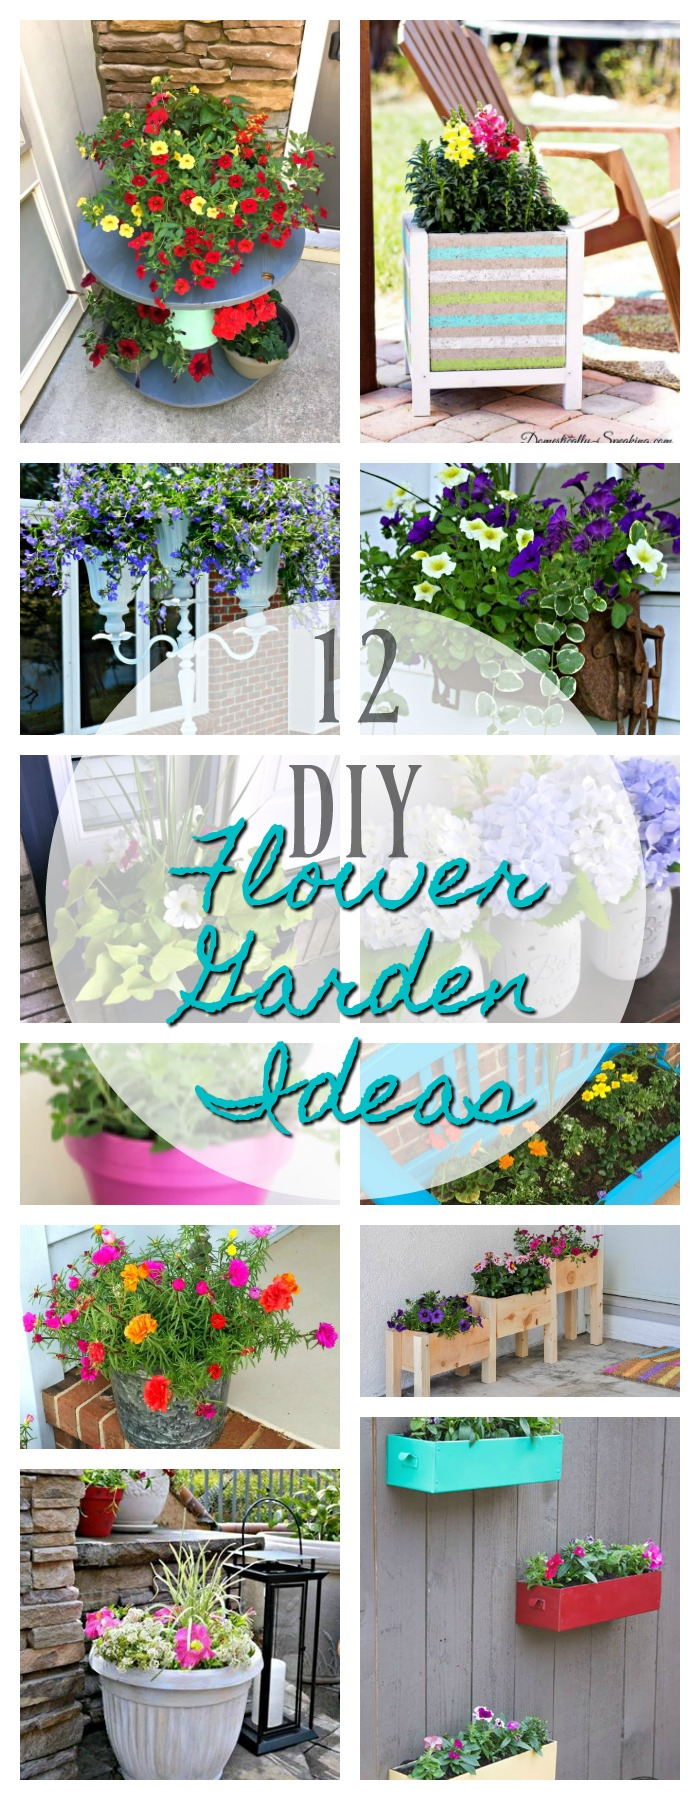 12 DIY Flower Garden Ideas - DIY Housewives Series - 2 ...